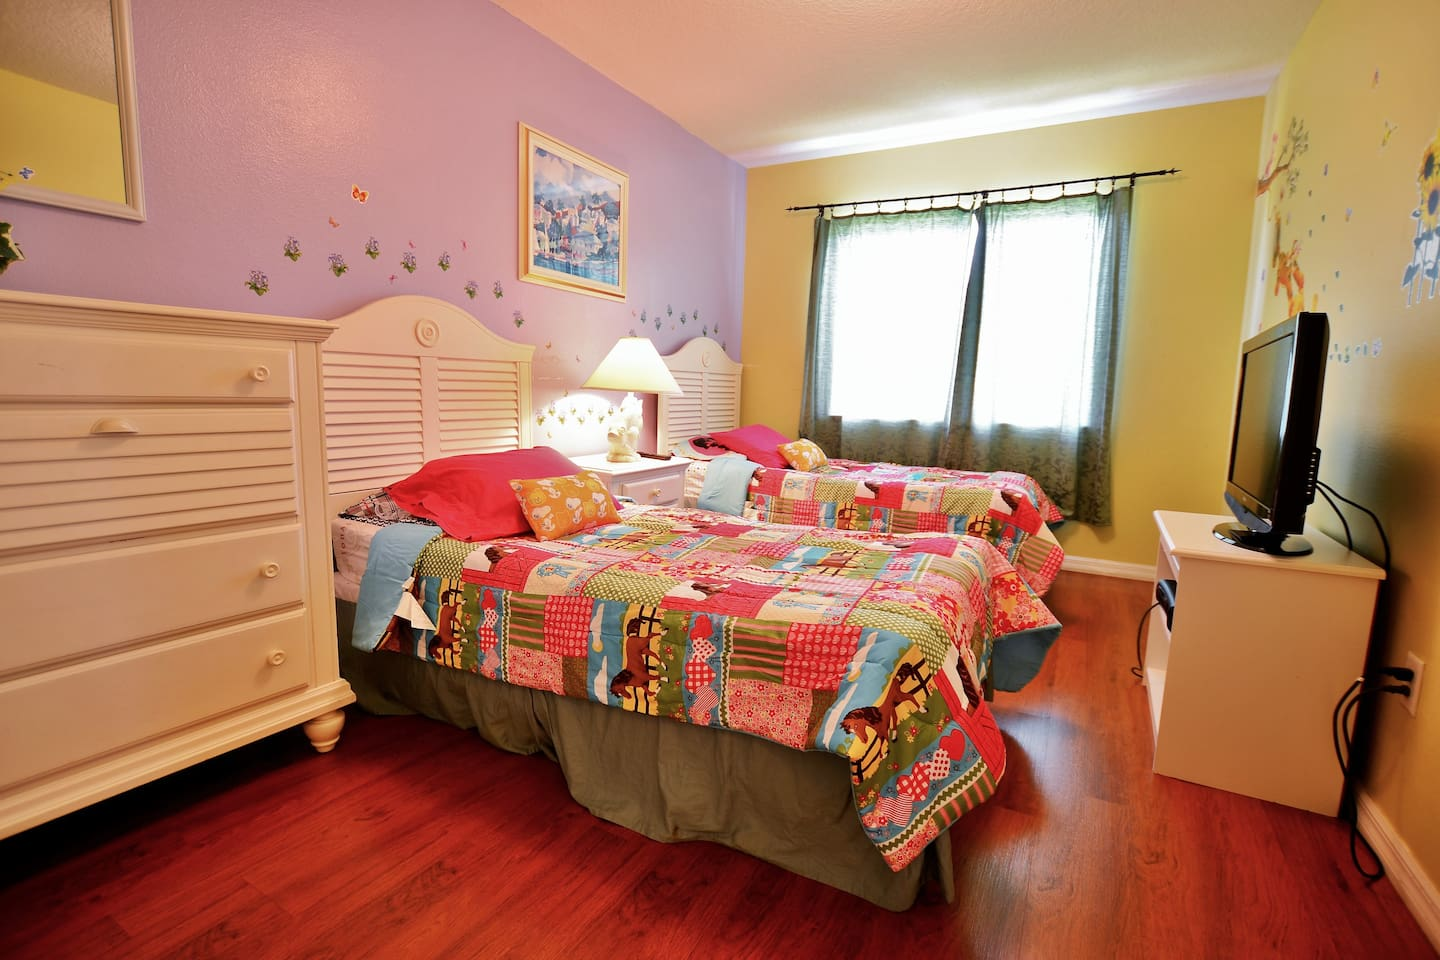 The 4th bedroom with 2 twin size twin beds